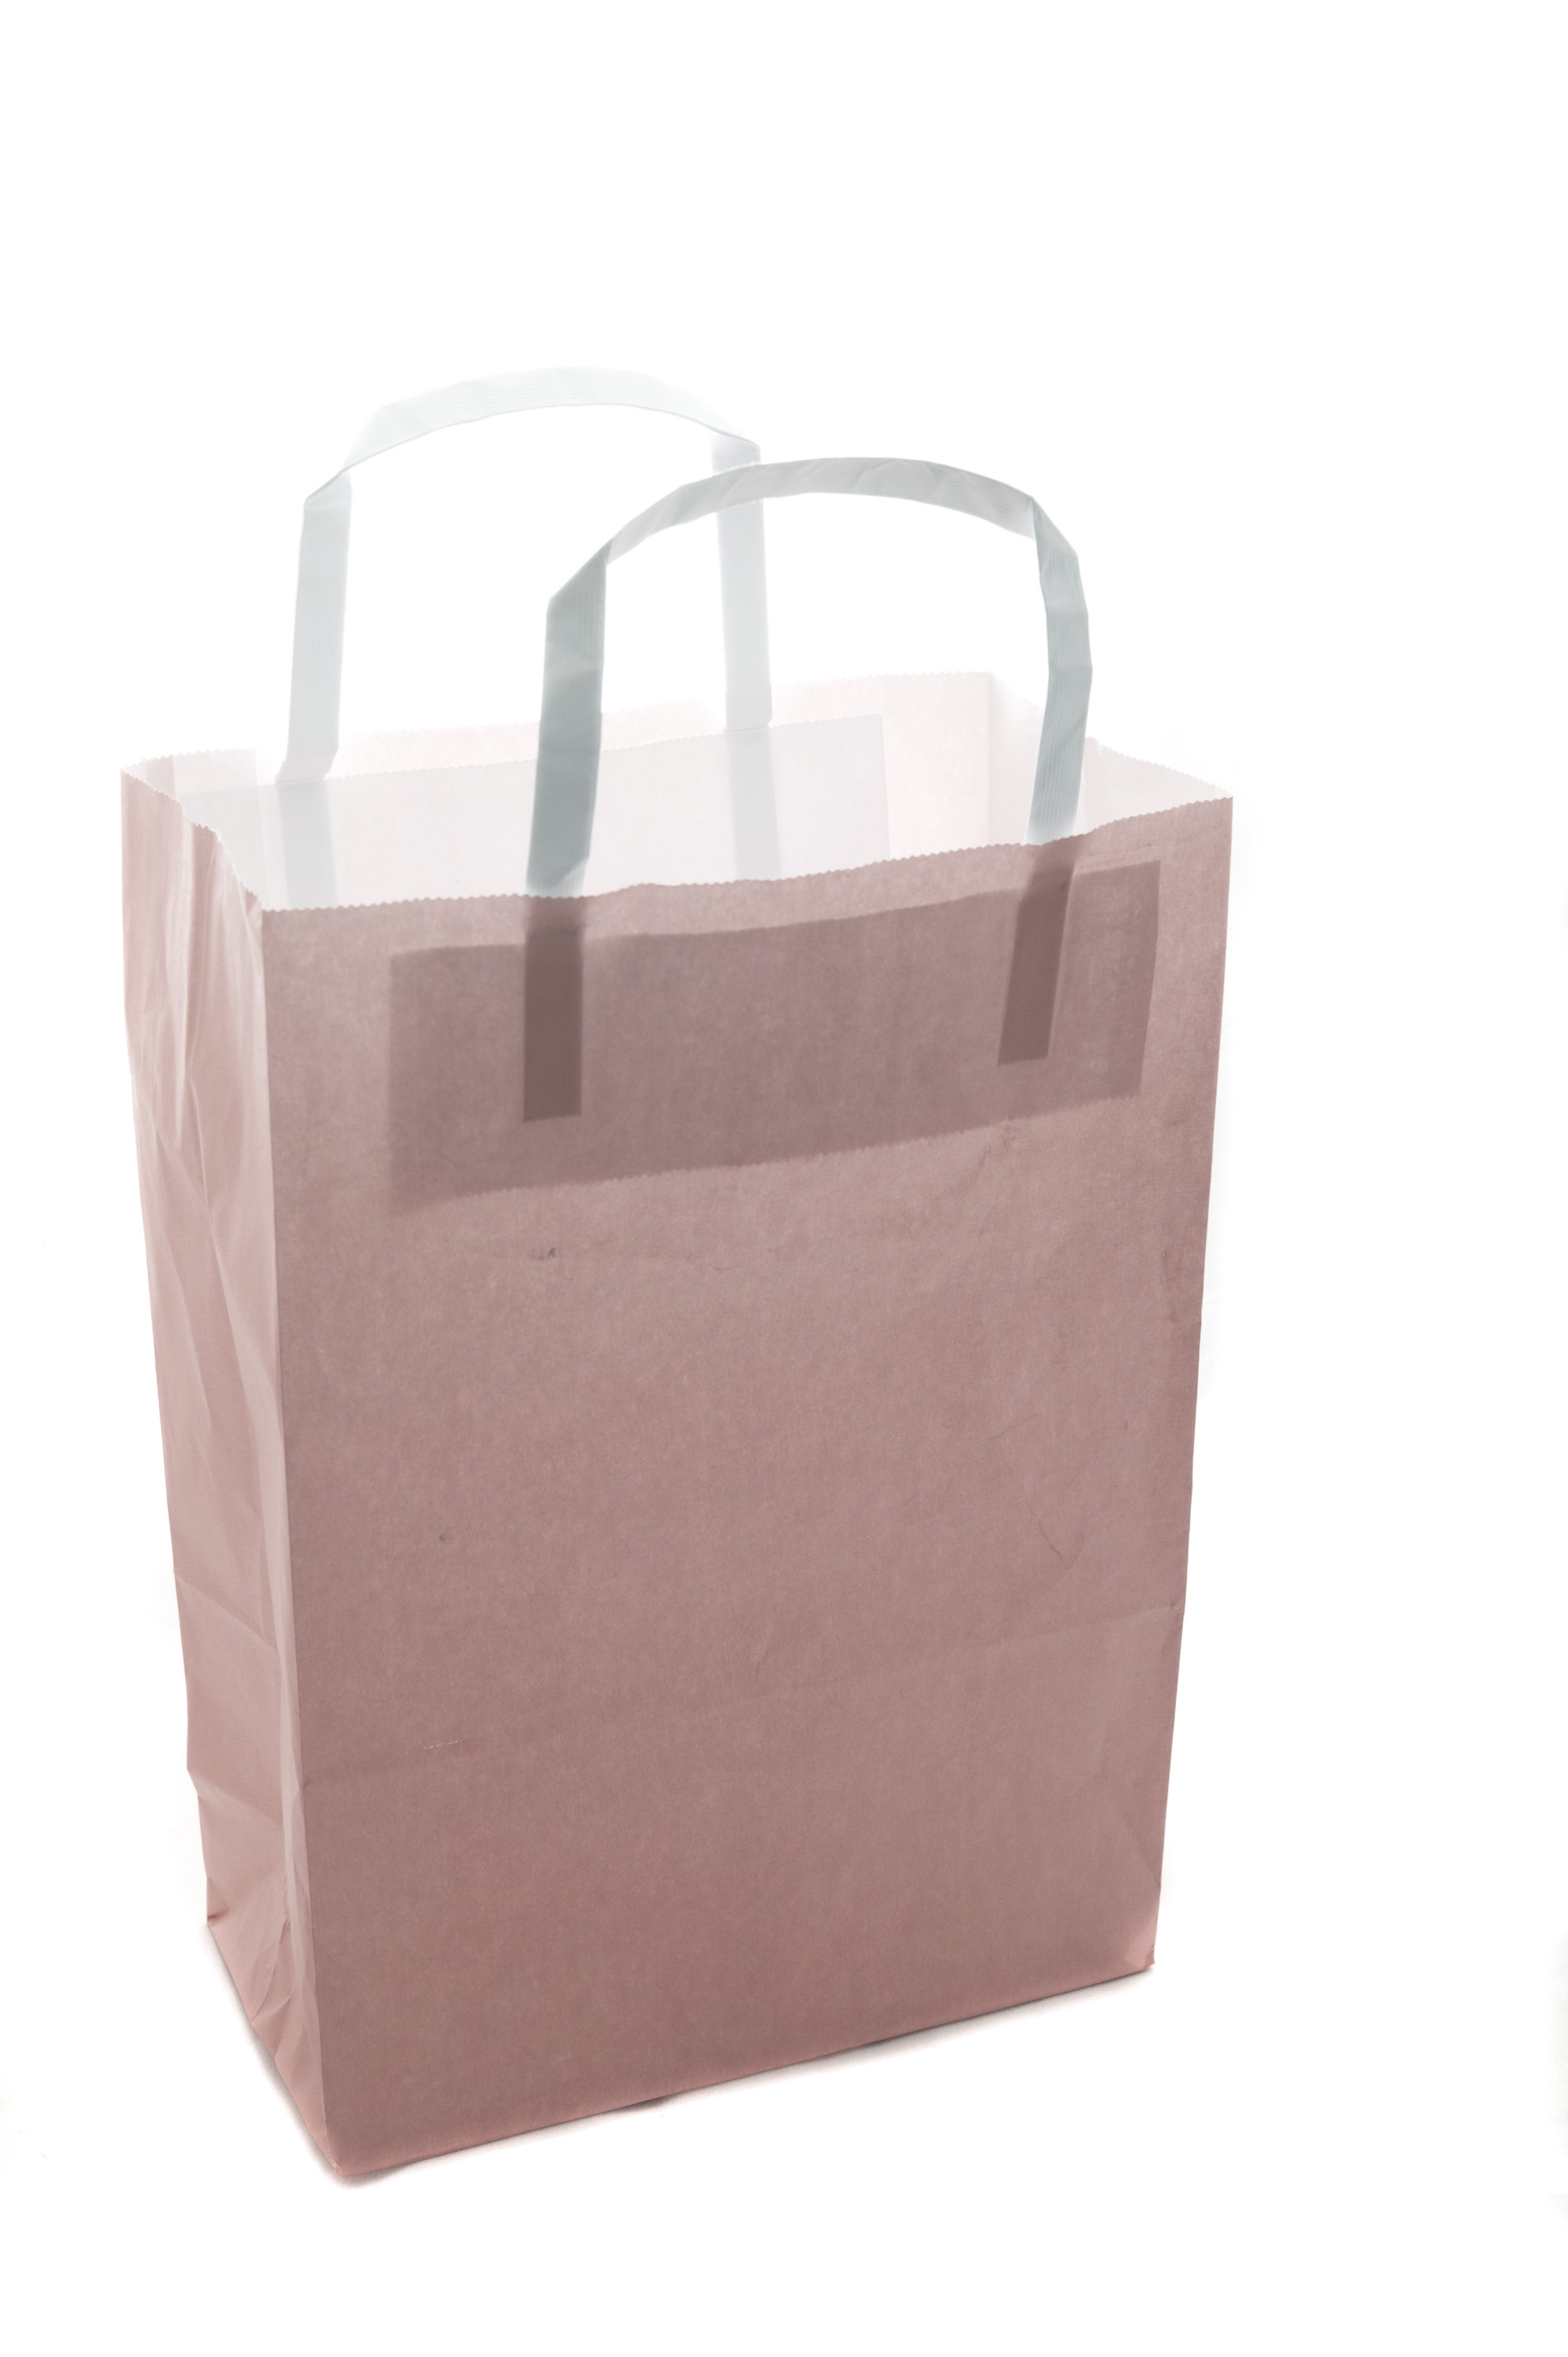 Photo Of Plain Brown Paper Carrier Bag Isolated On White